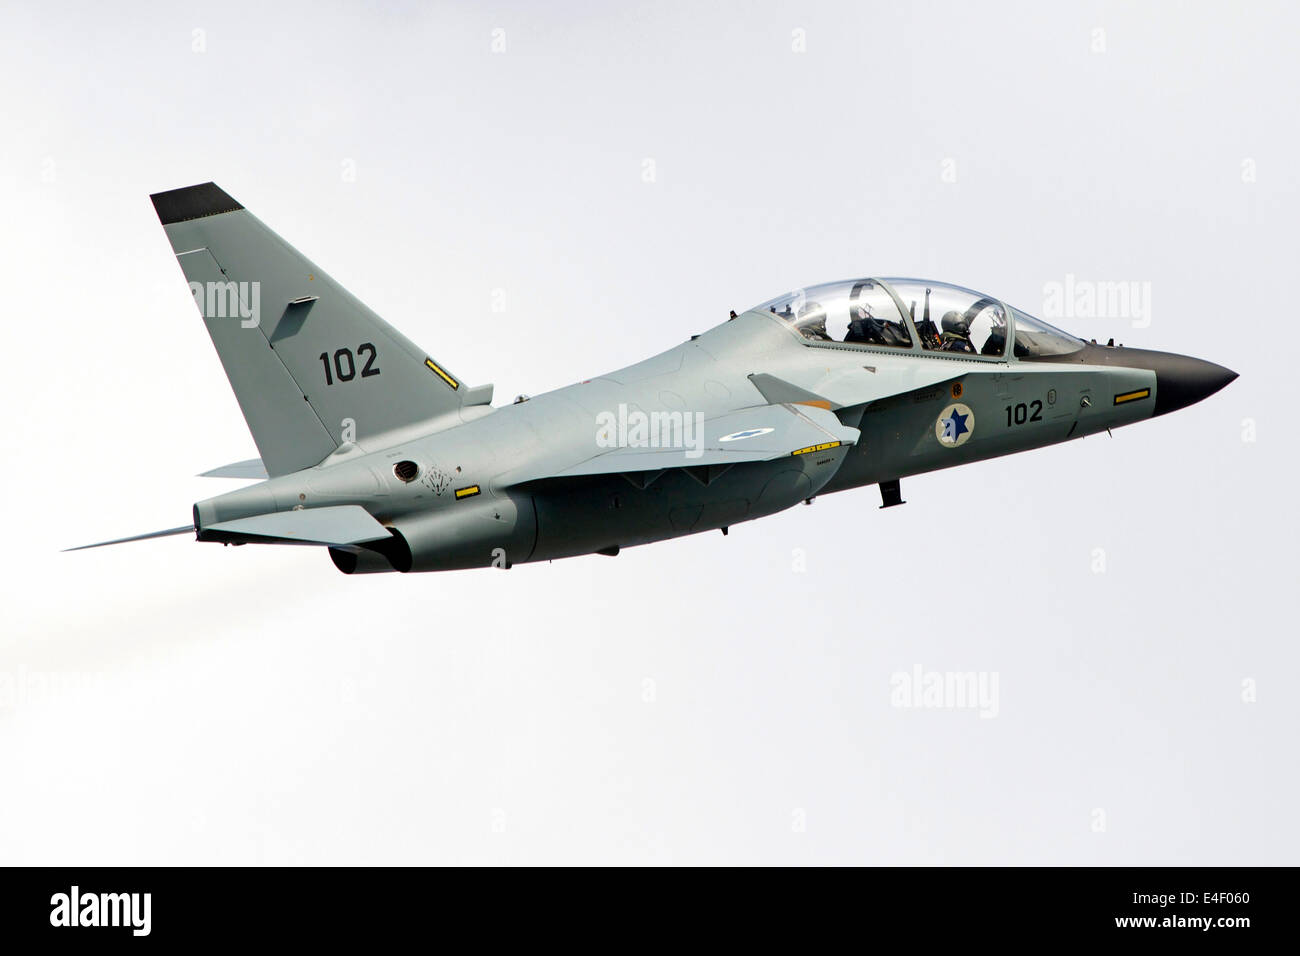 An Alenia Aermacchi M-346 Master trainer aircraft of the Israeli Air Force in flight over Italy. - Stock Image